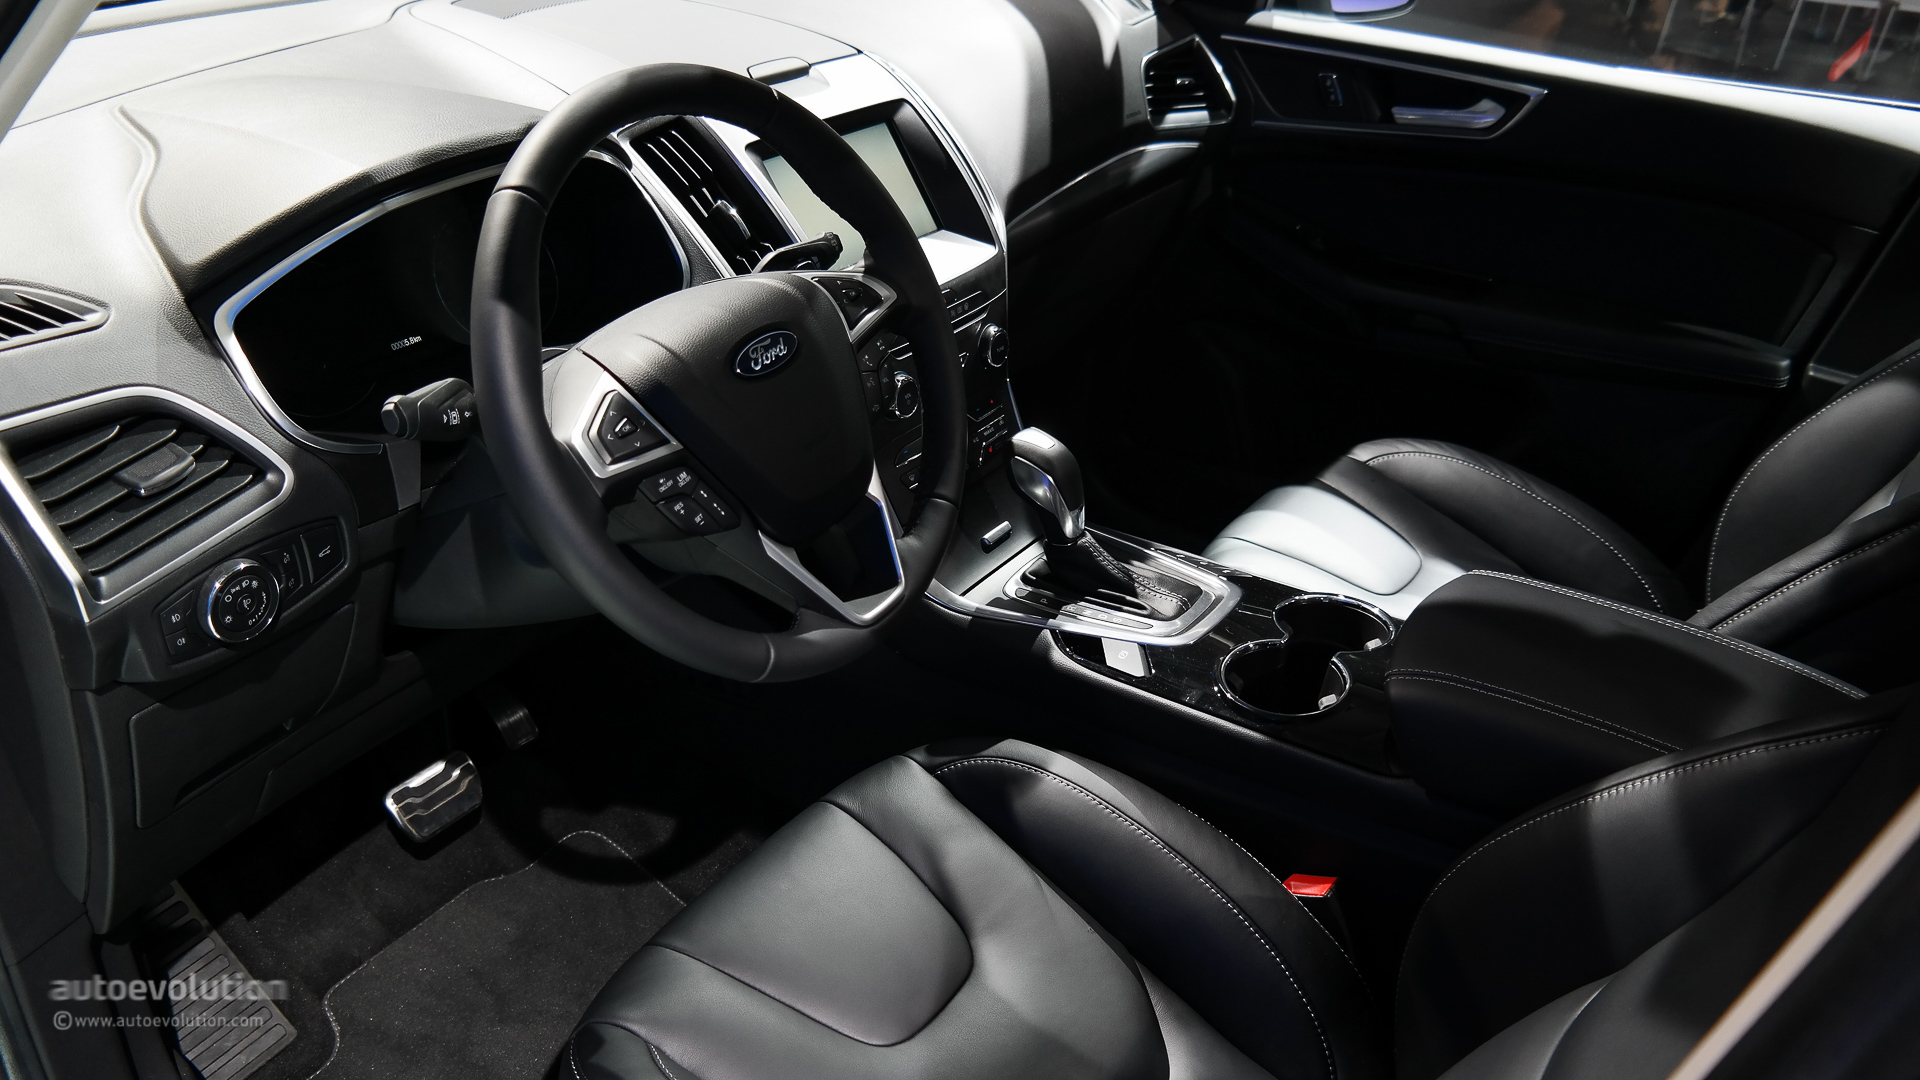 C Max Ford >> 2015 Ford S-Max Is a Posh Family Hauler [Live Photos] - autoevolution